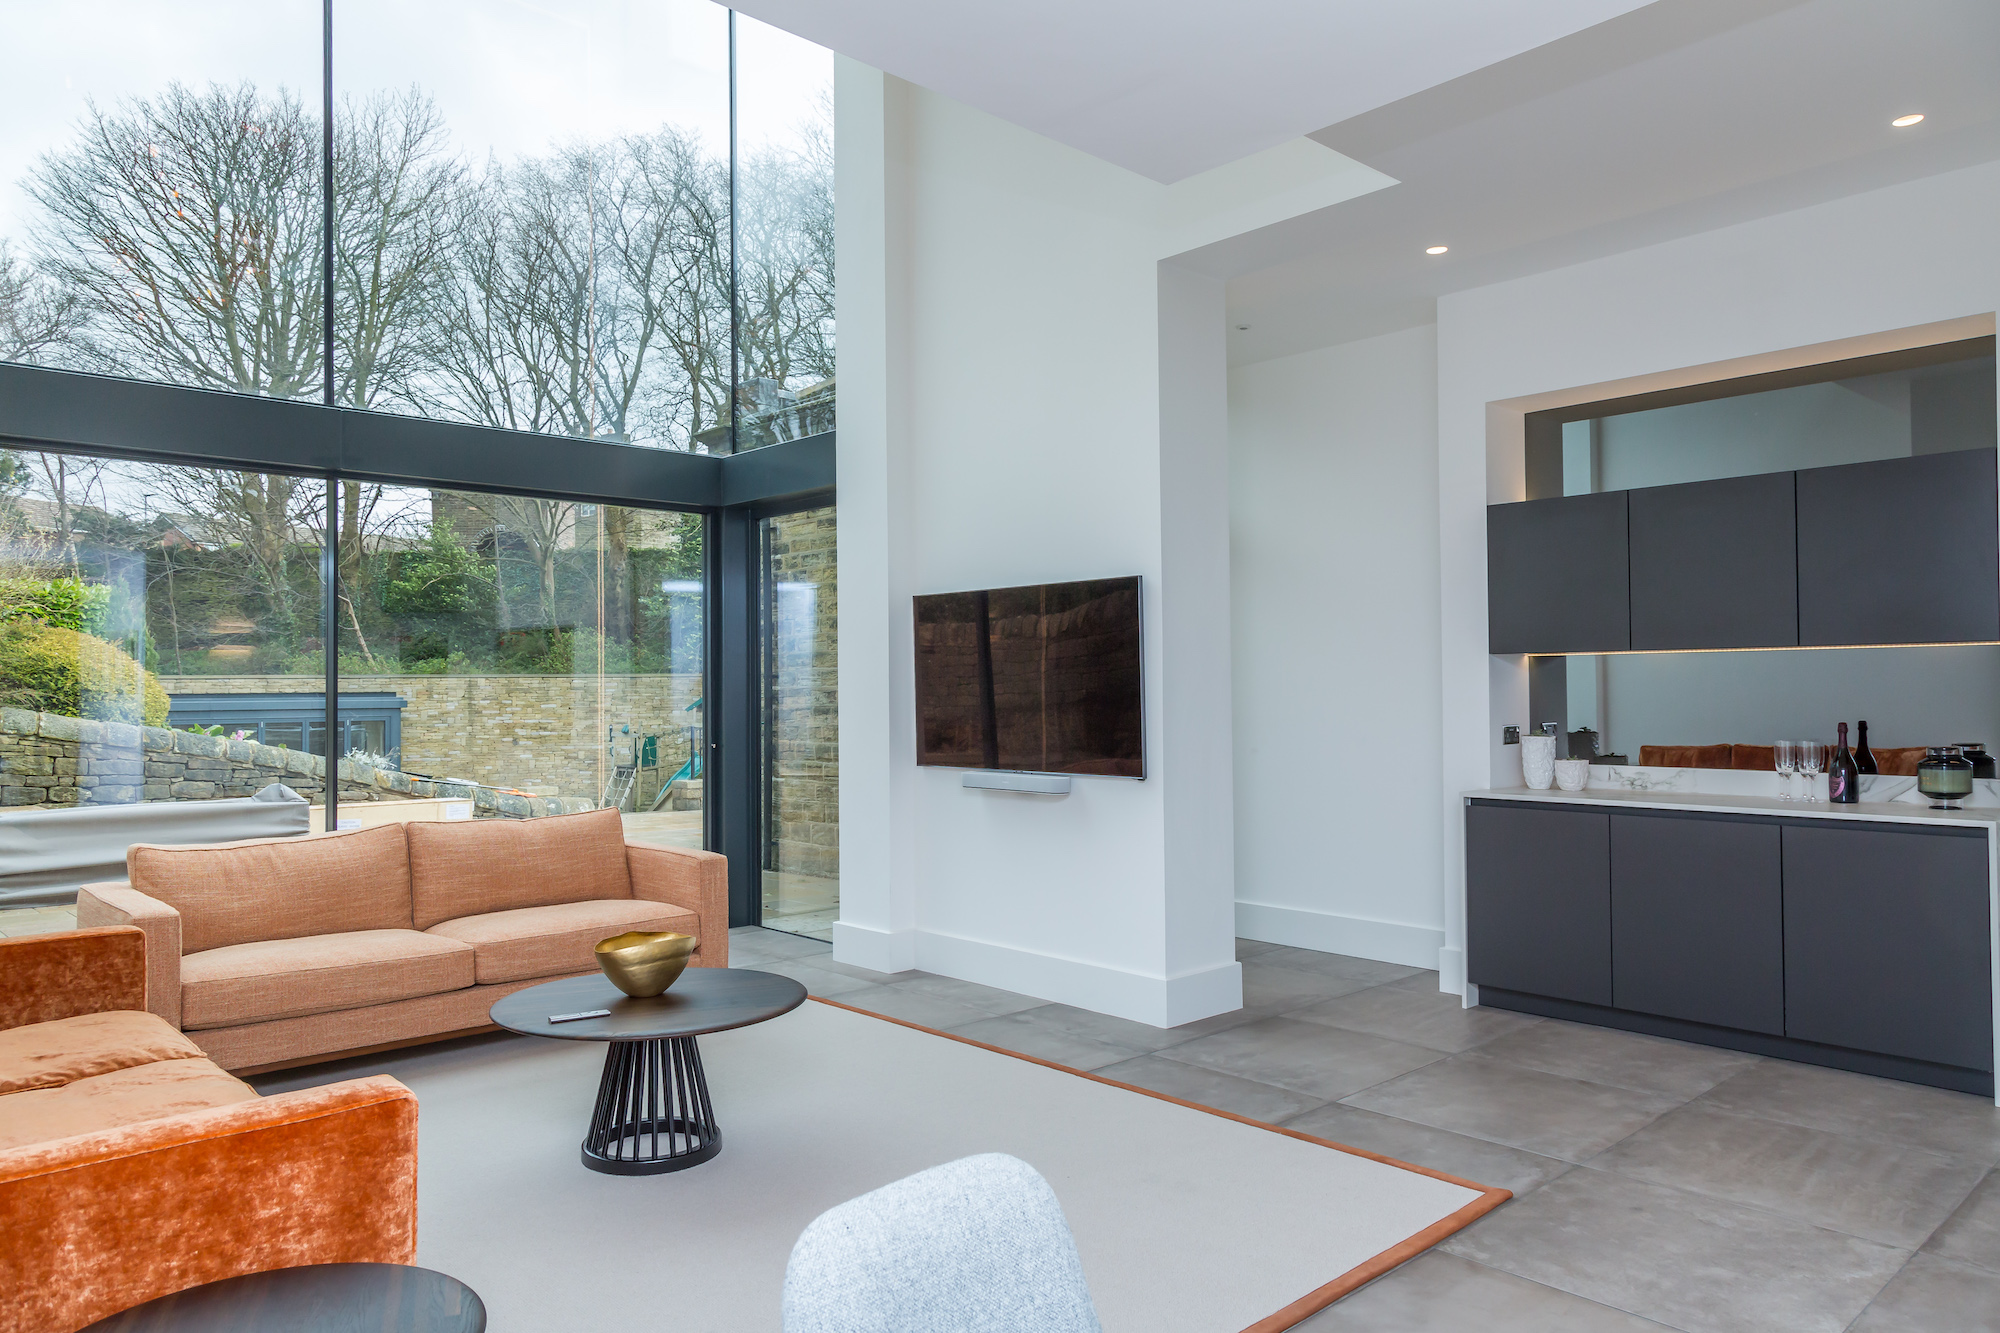 Why you should consider a glass extension - Fibre Architects